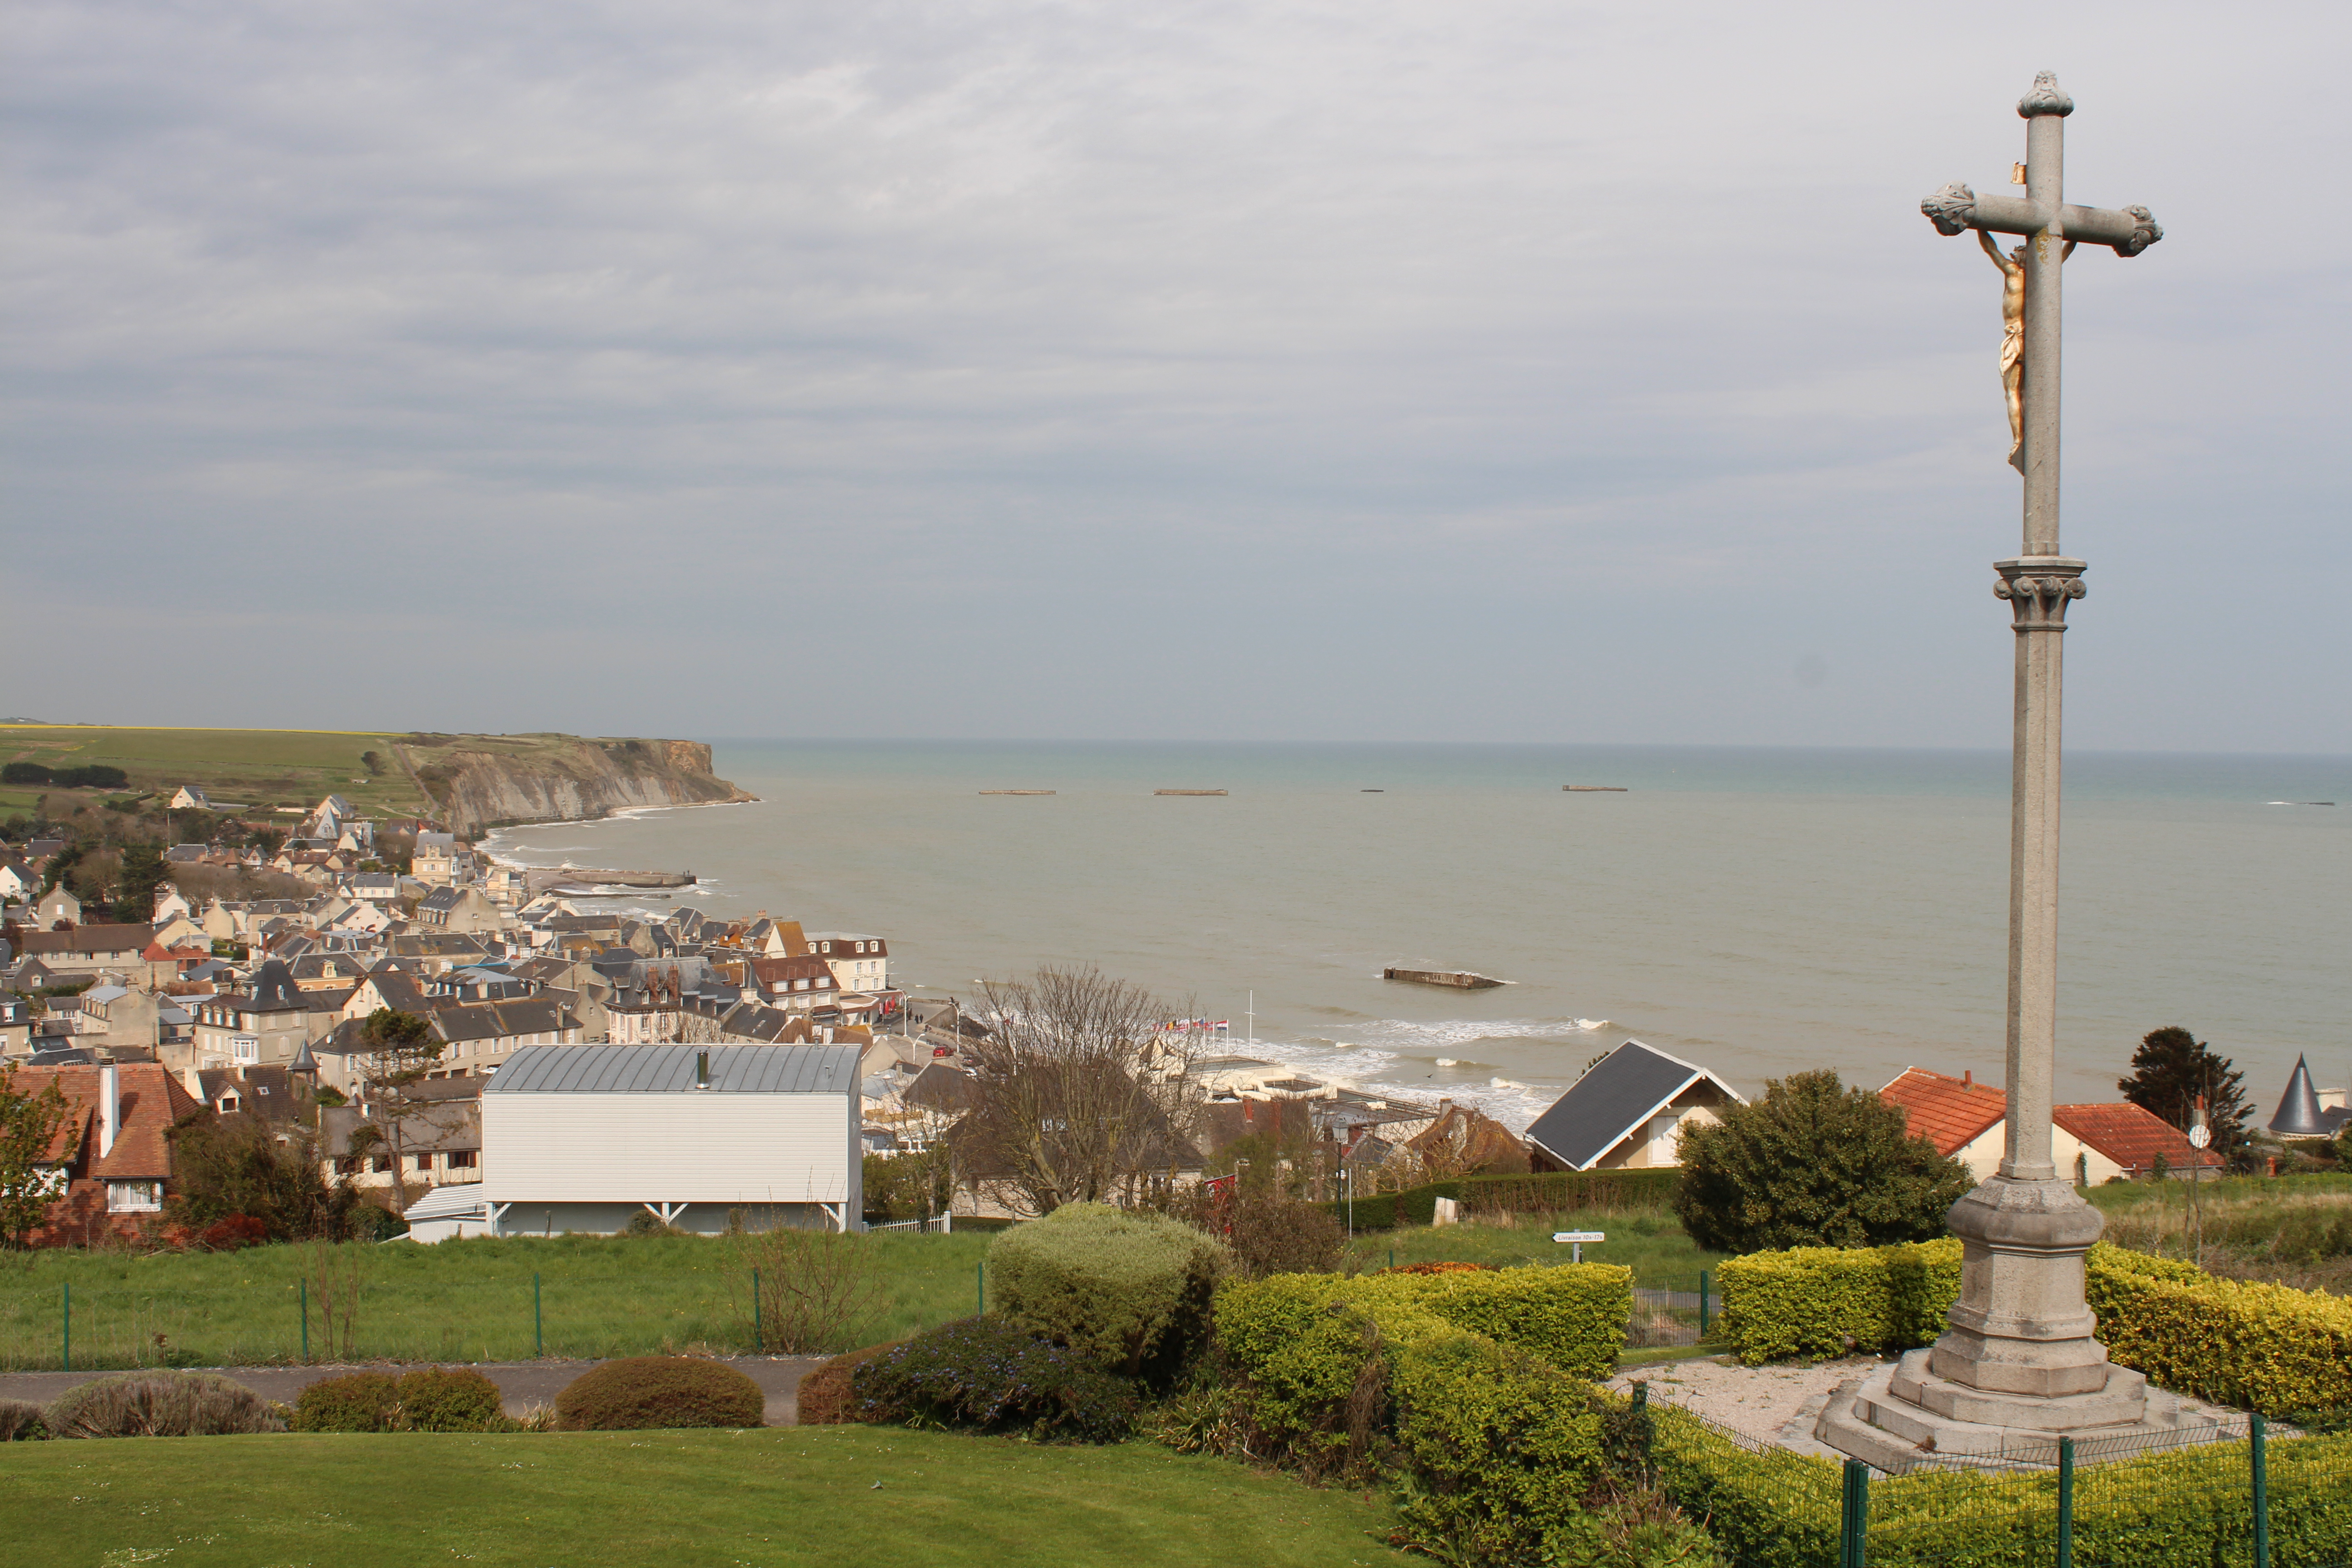 View from Arromanches museum wit a cross int he foreground looking down onto the town and sea below.